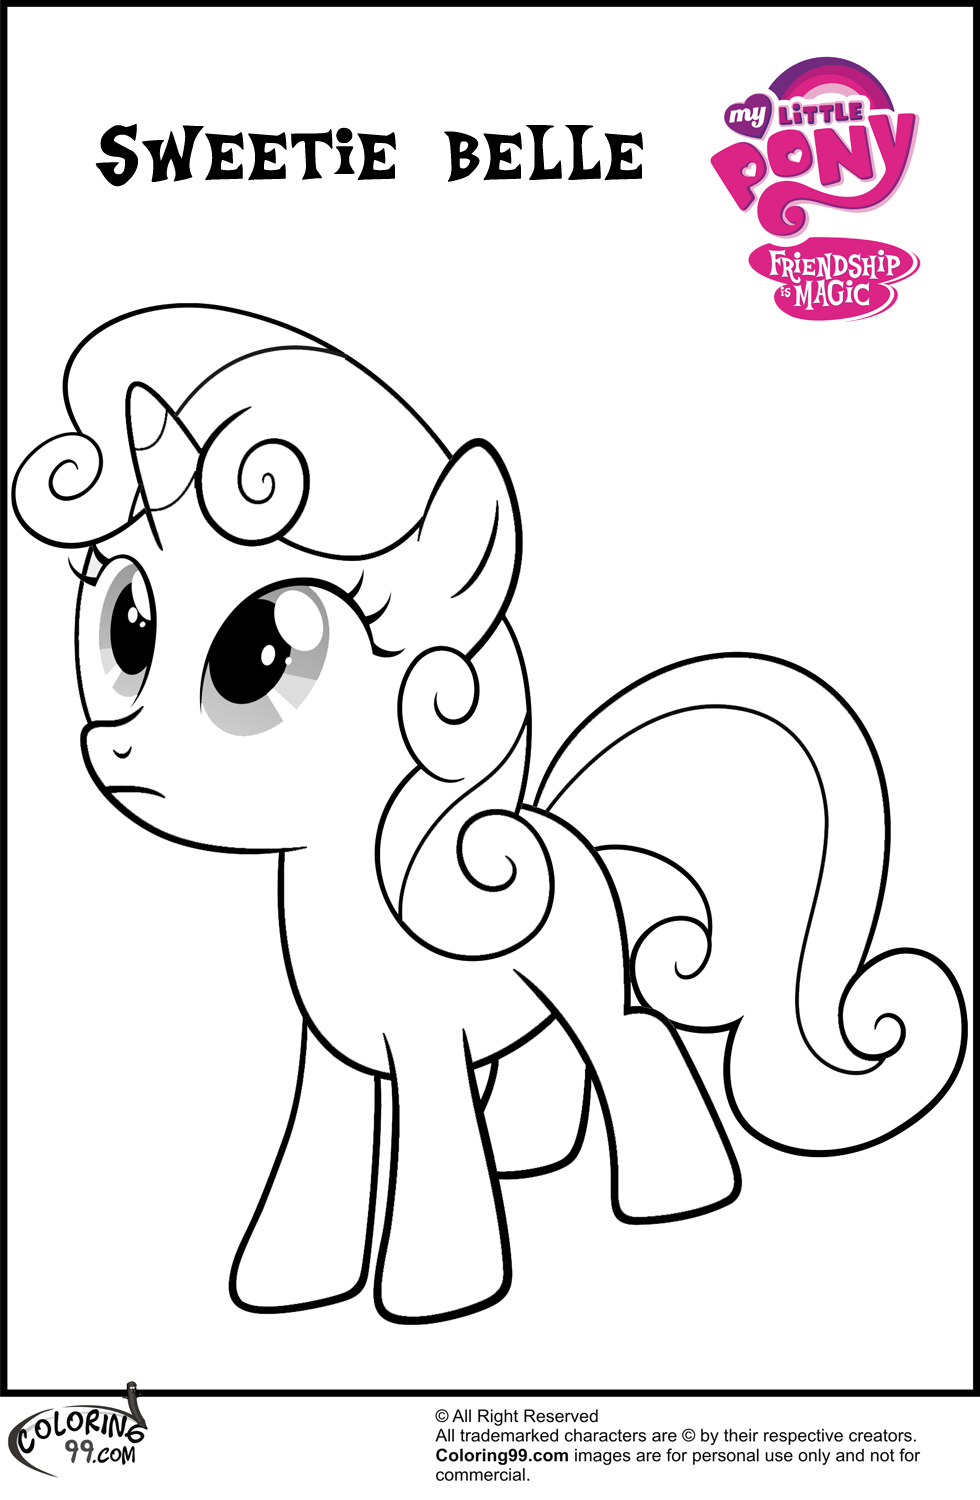 scootaloo coloring page - free my little pony scootaloo coloring pages